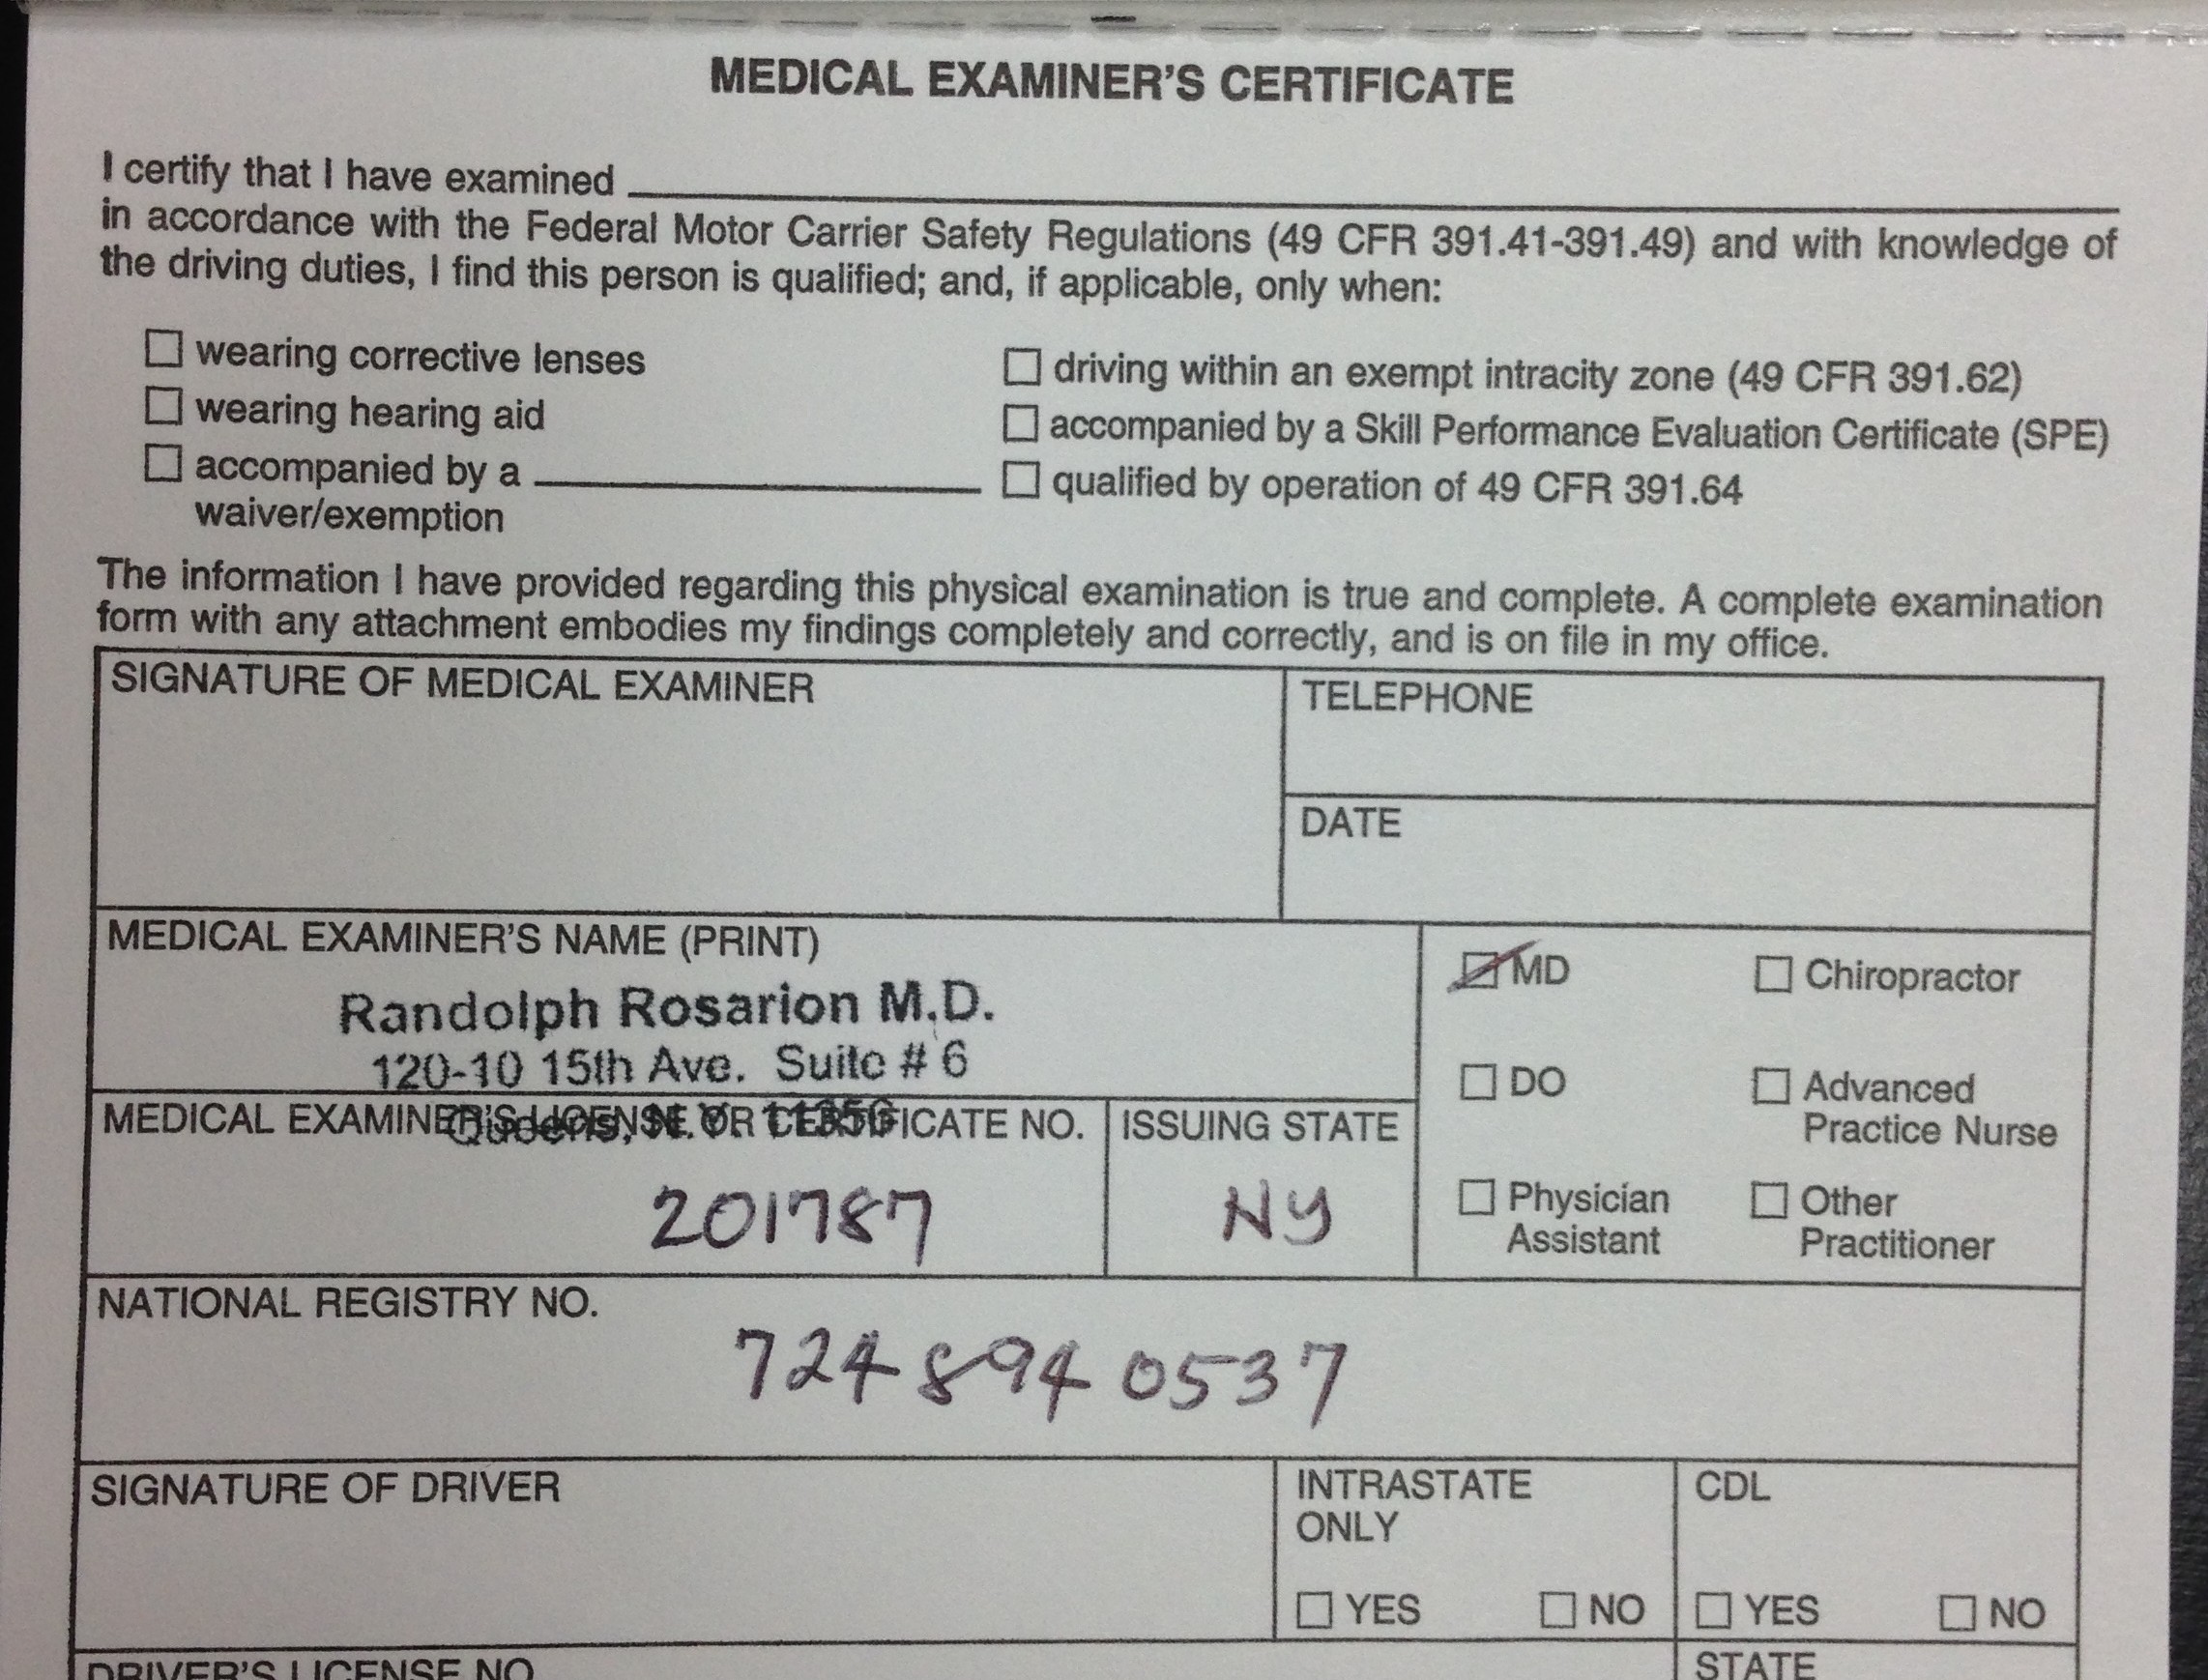 Marvelous New Forms For 2014 DOT Physicals: Medical Examineru0027s Certificate And  Medical Examination Report Form